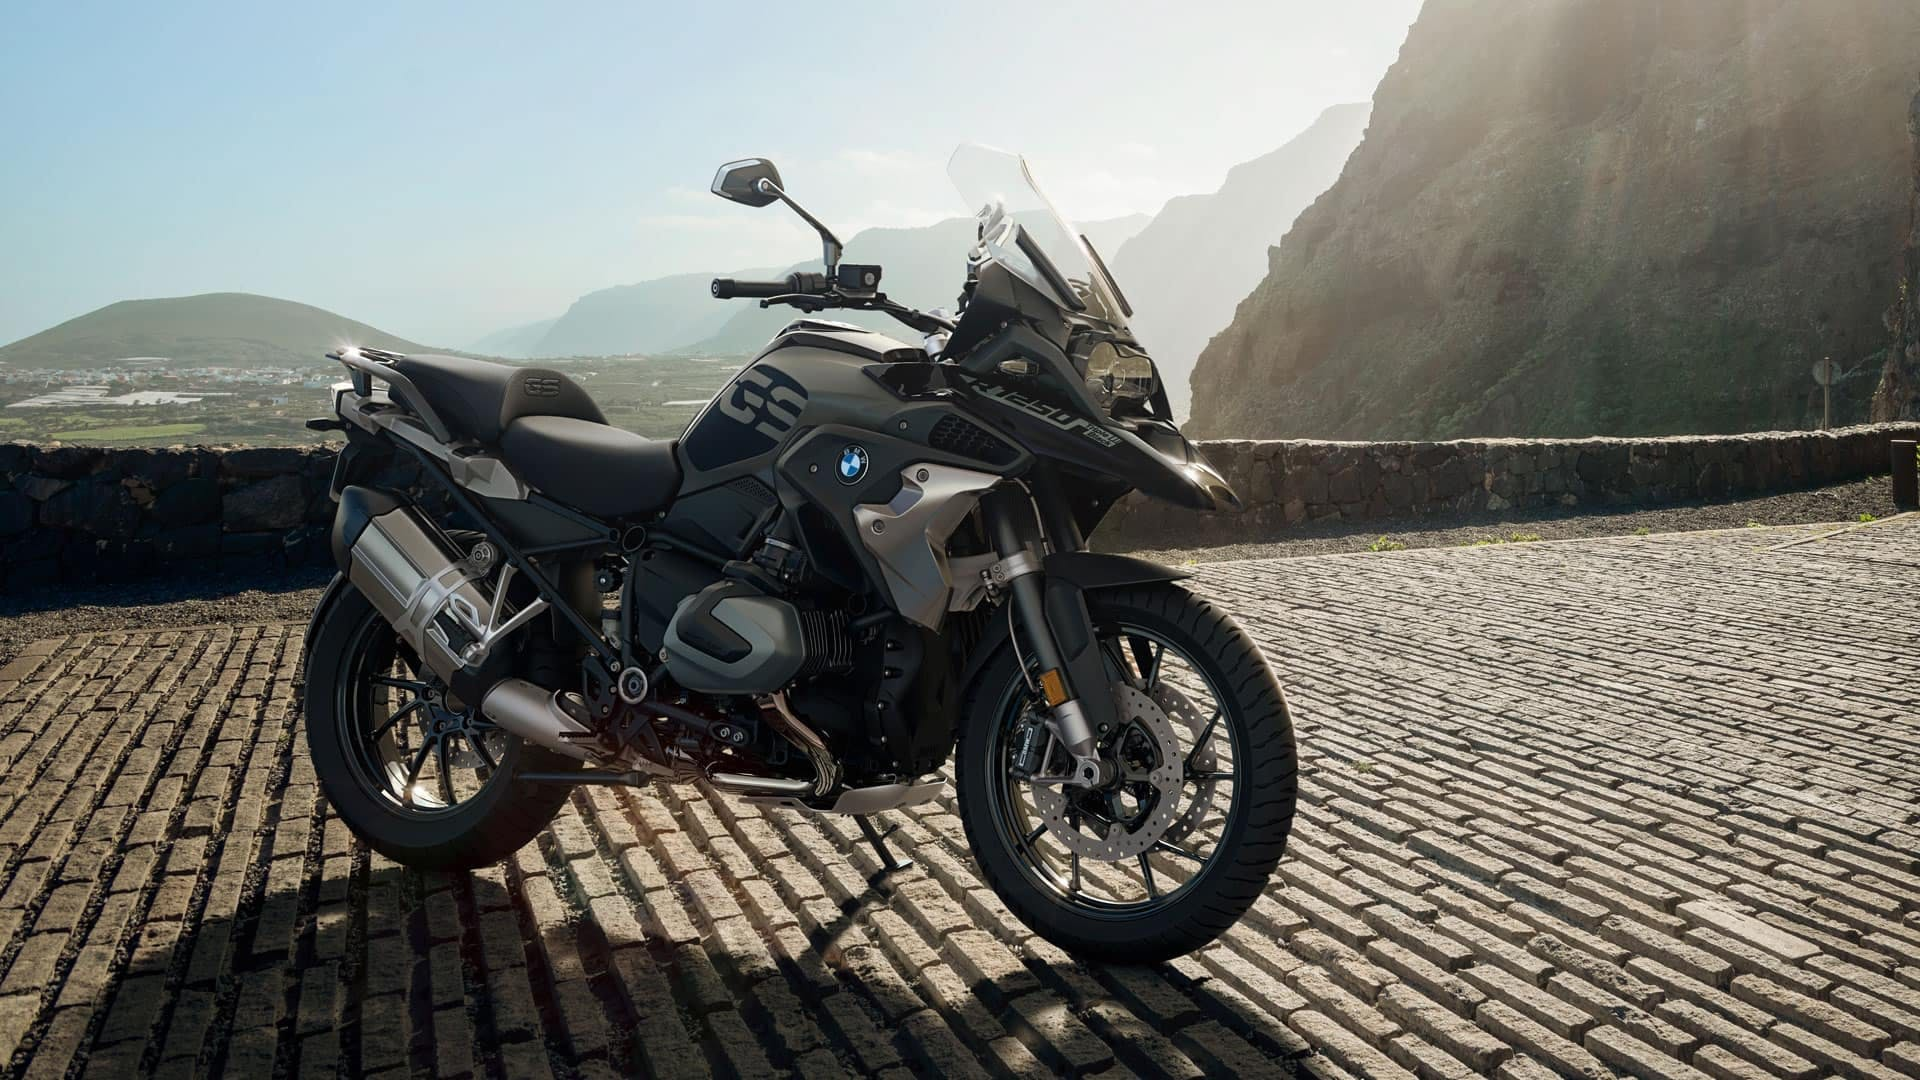 BMW R 1250 GS parked on the street